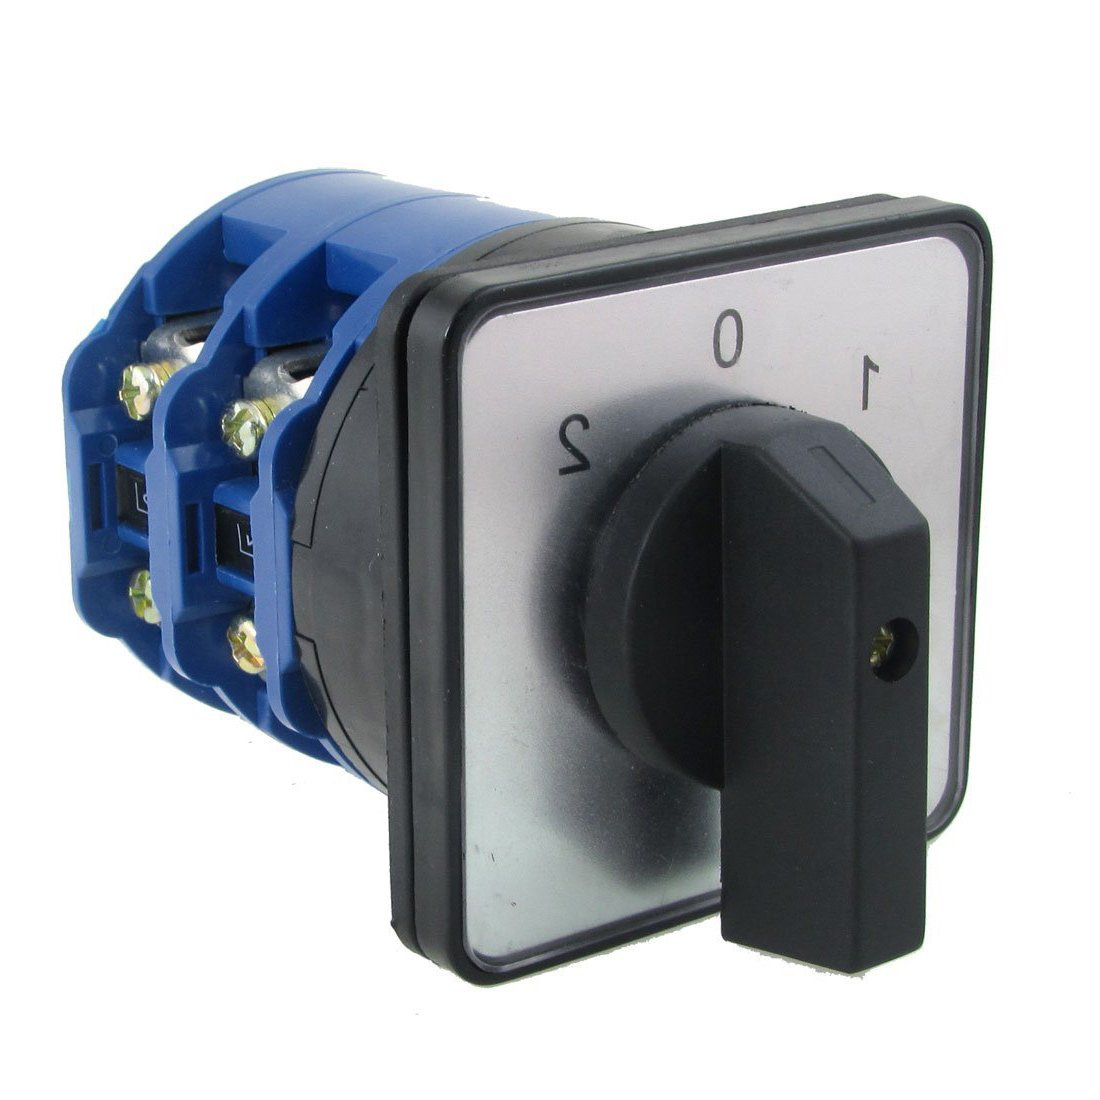 YXQ Cam Changeover Switch, 660V Ui 63A Ith ON/OFF/ON 3 Position 8 Screw Terminals Rotary Switch with Screws